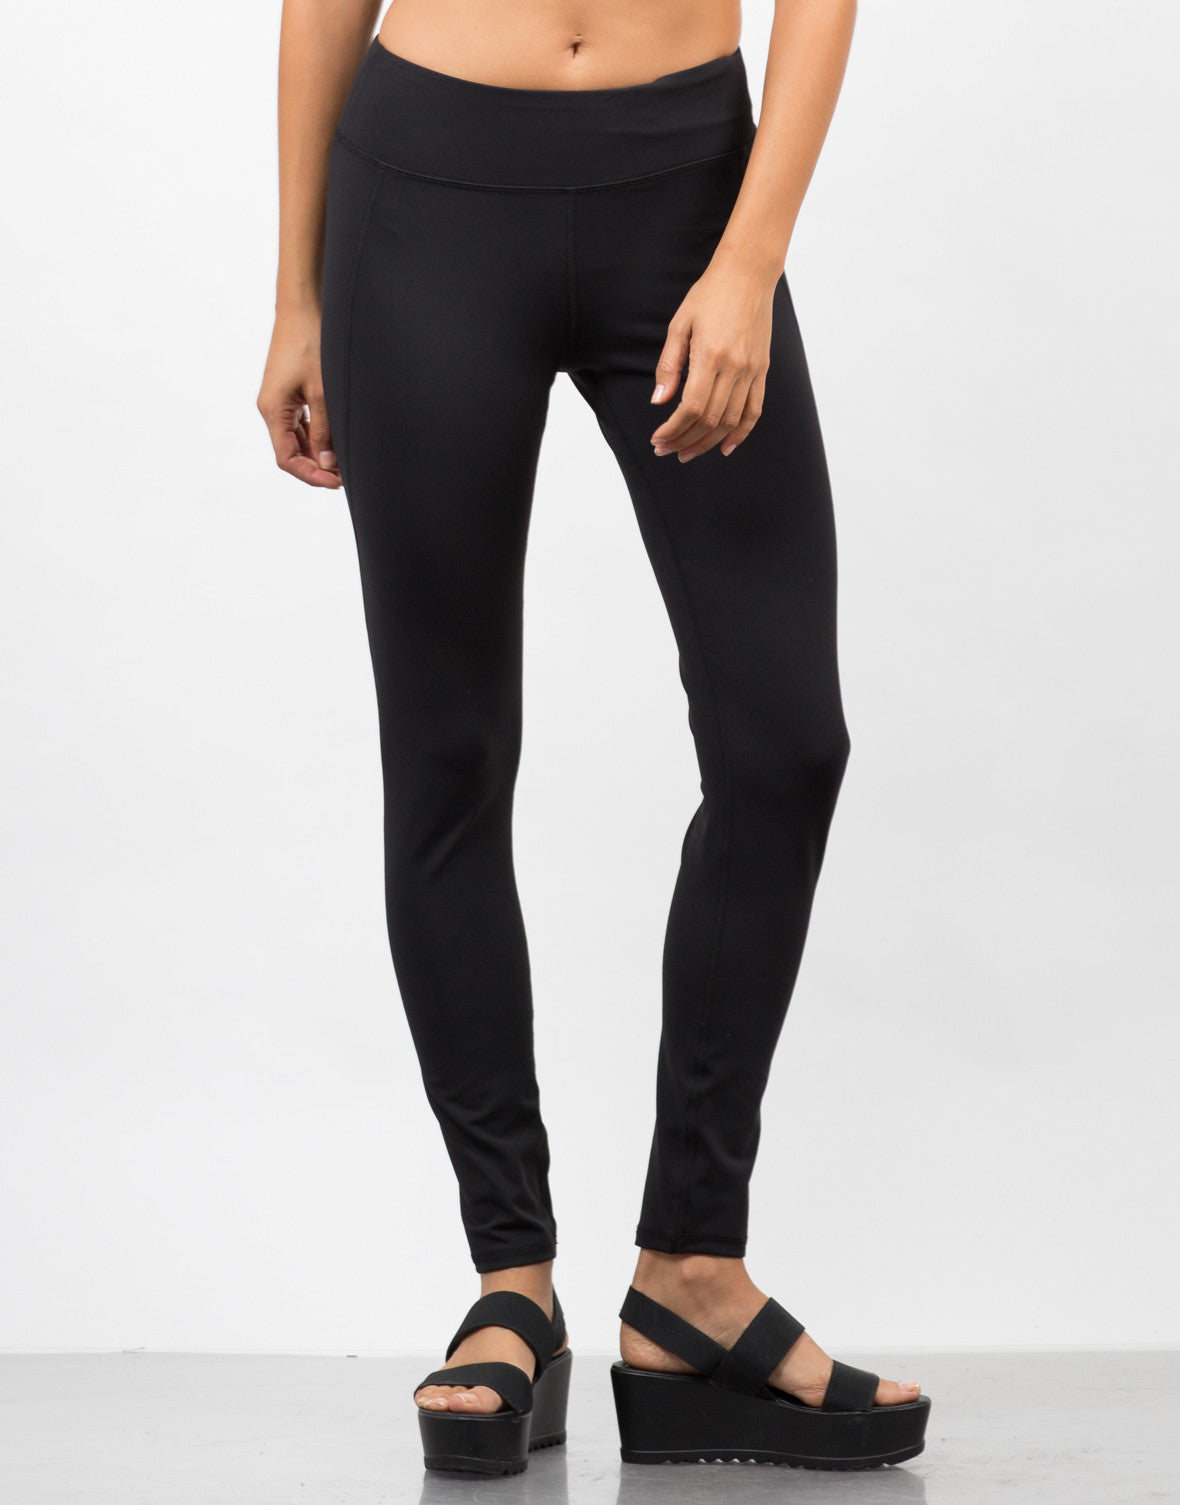 Front View of Stretchy Yoga Leggings